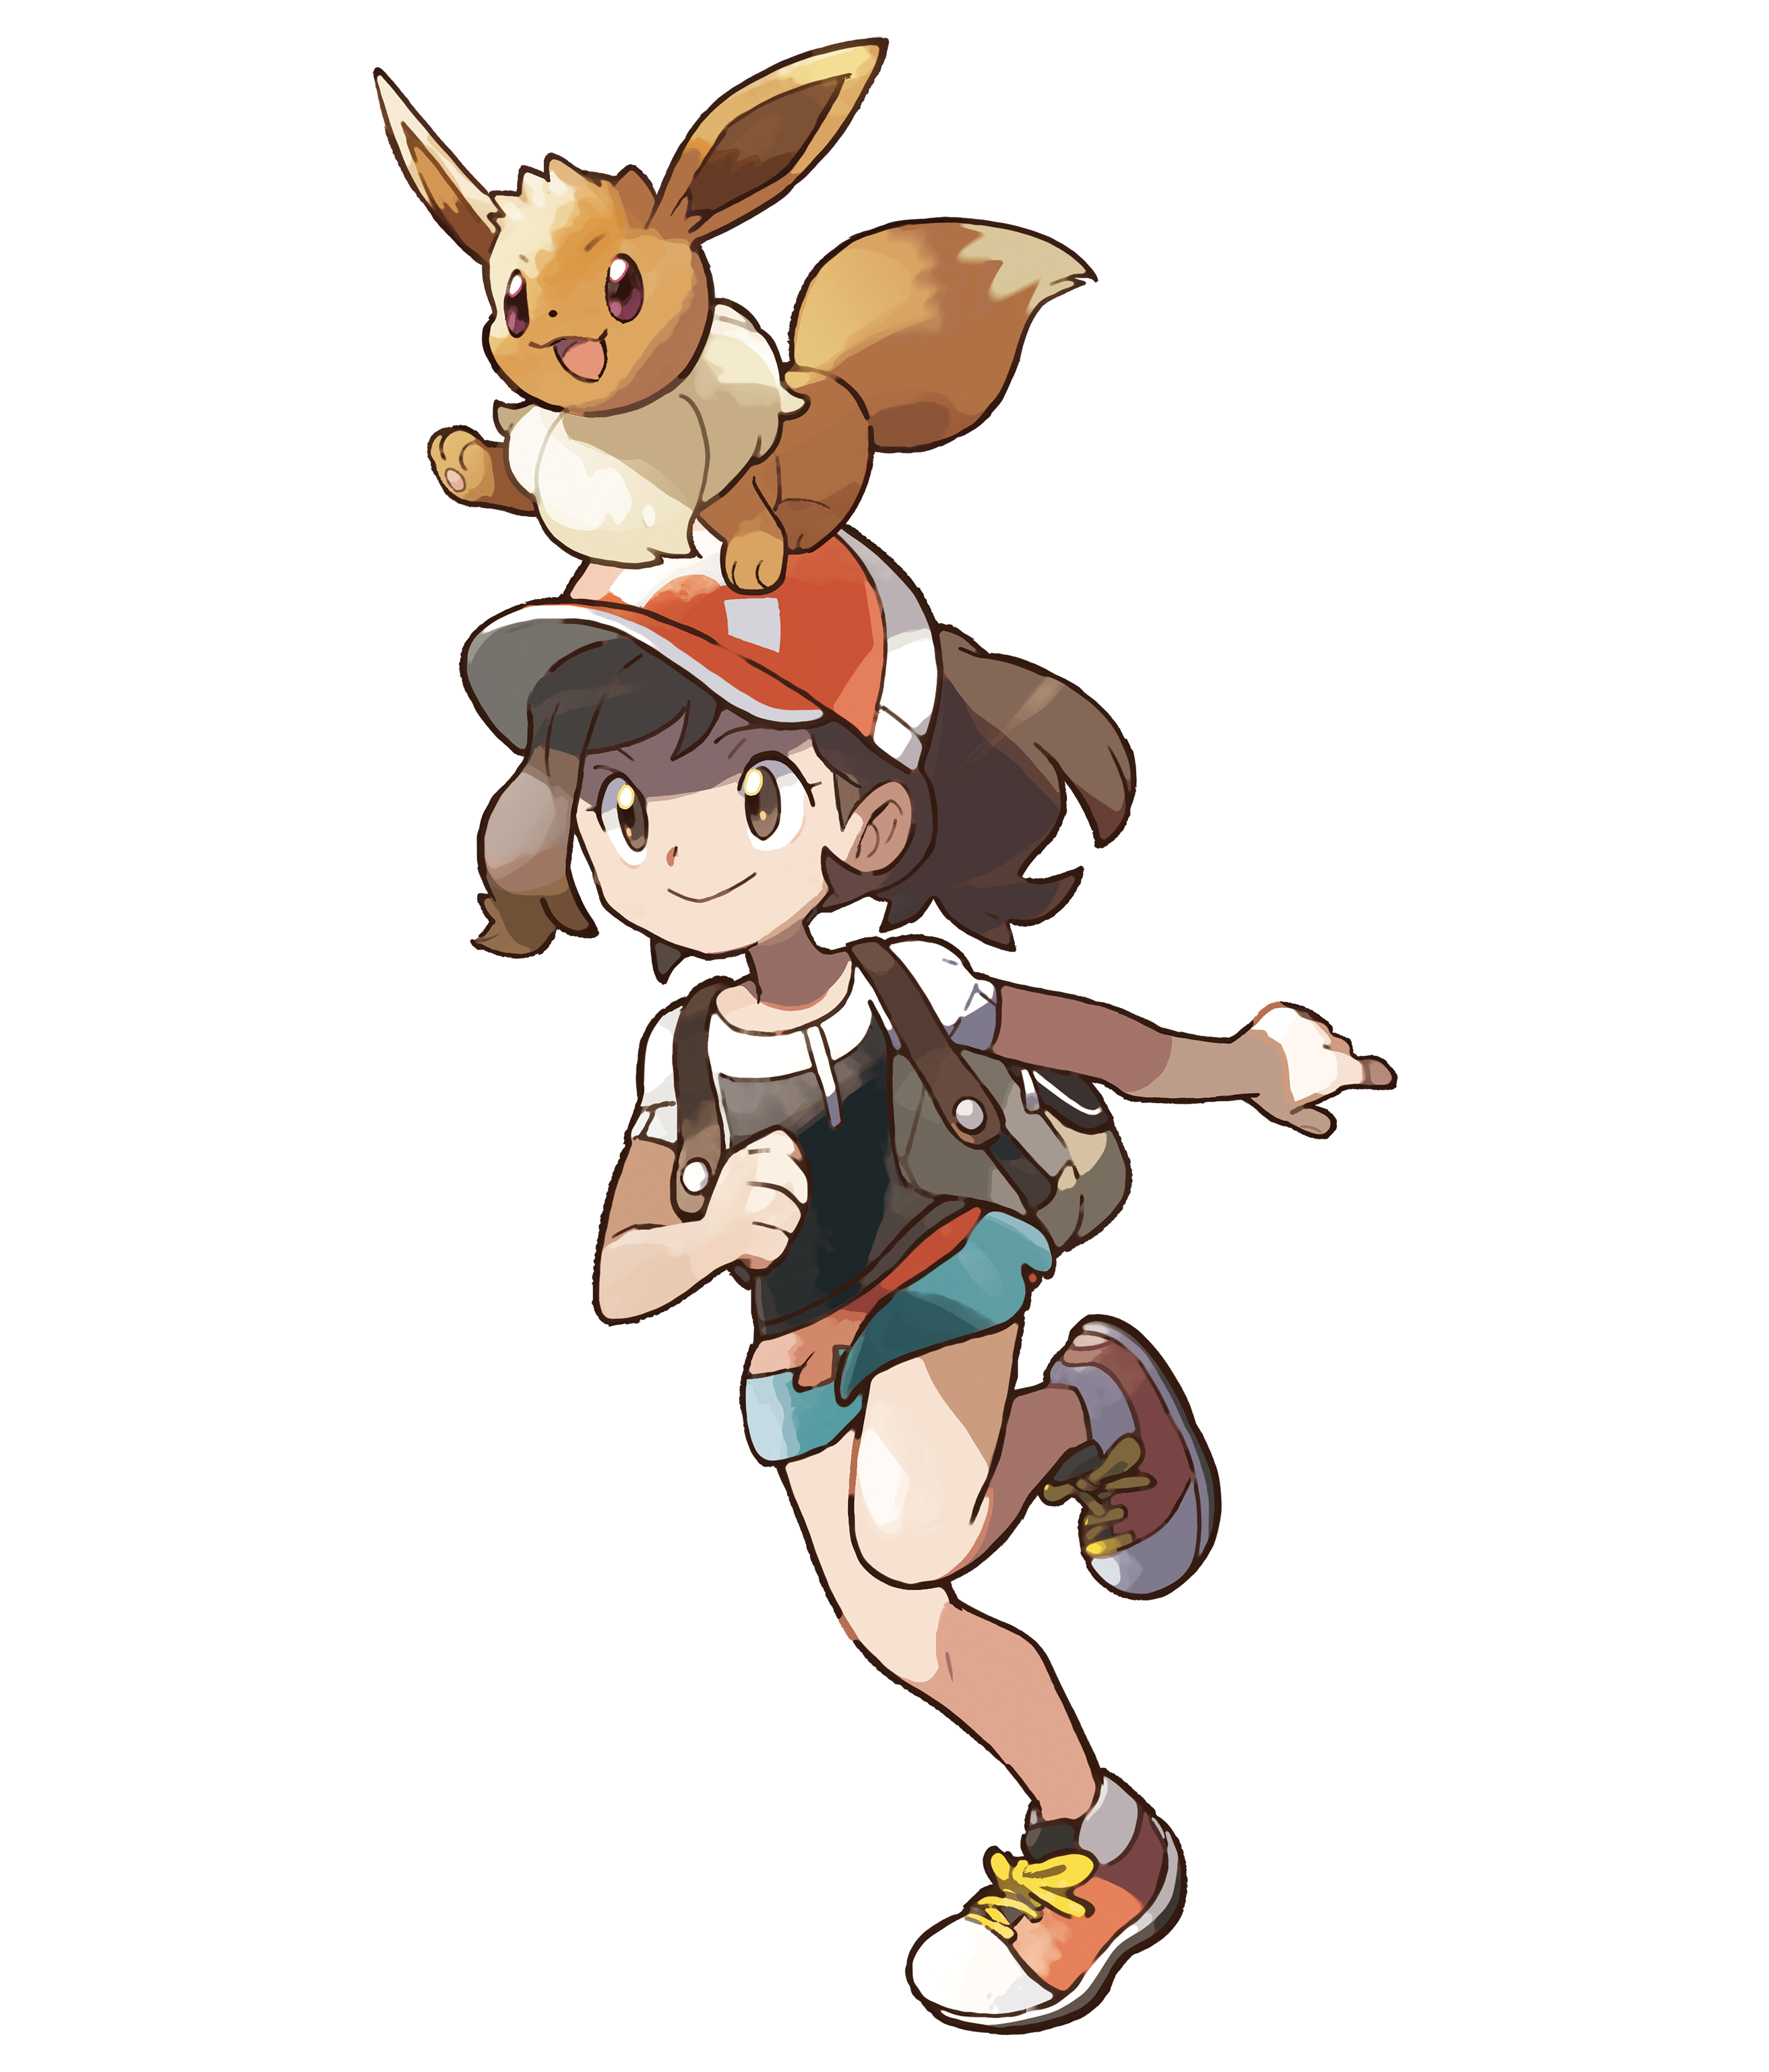 Girl Elaine Runs with Eevee on Head Render (Pokemon Let's Go).png